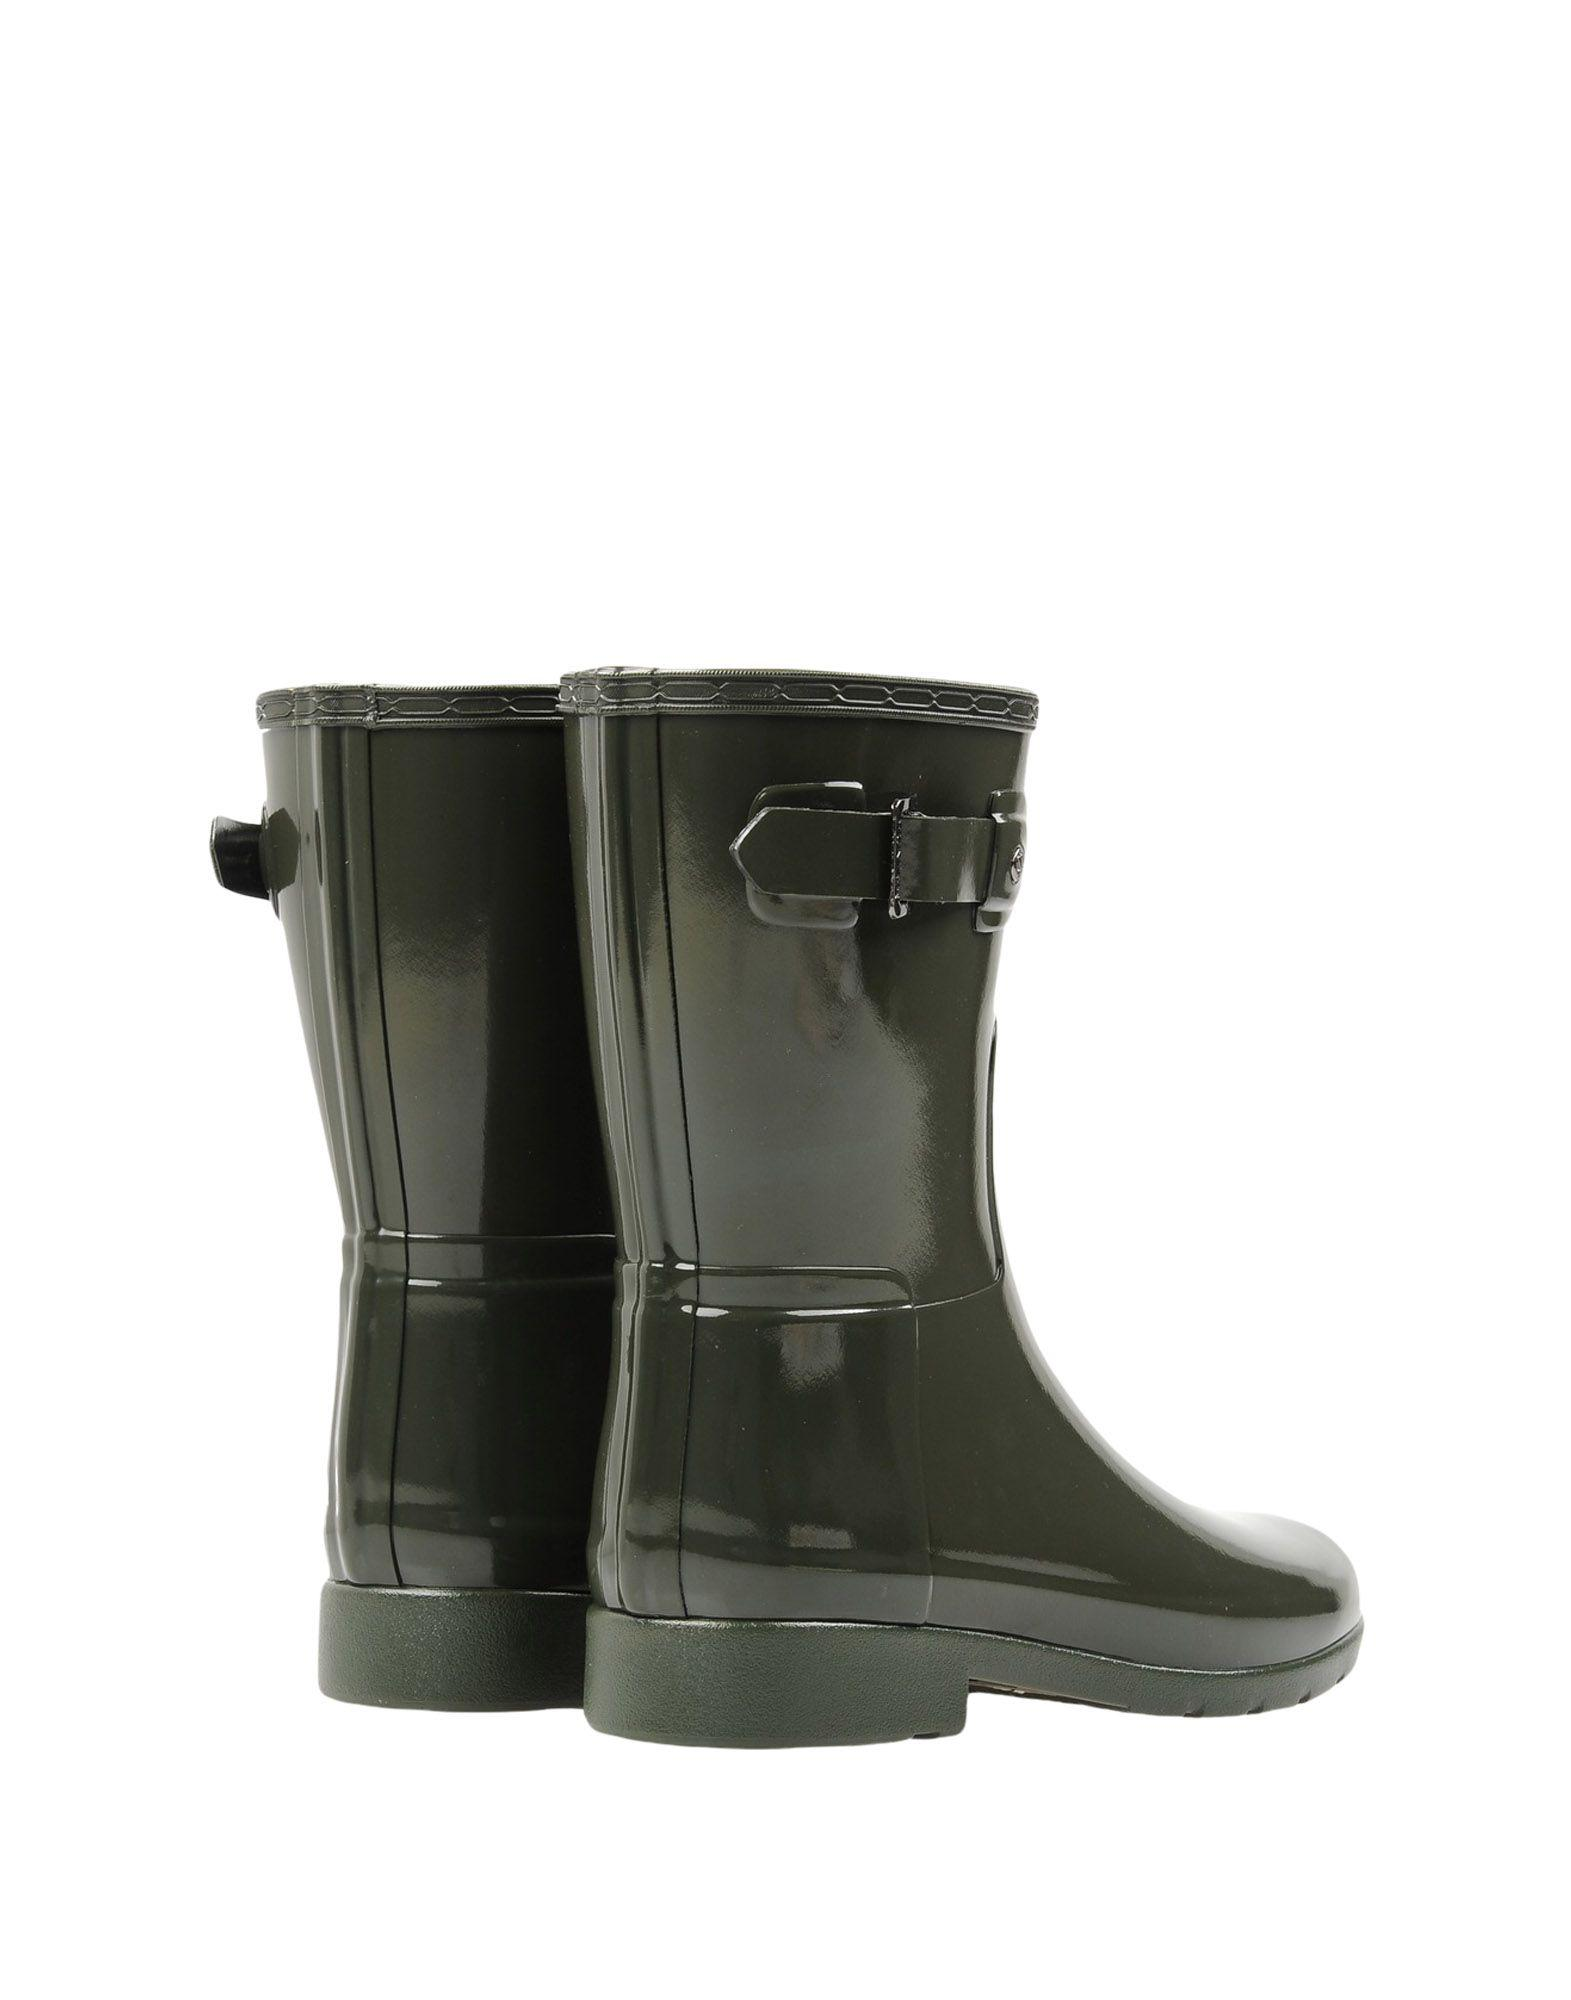 HUNTER Rubber Ankle Boots in Khaki (Green)